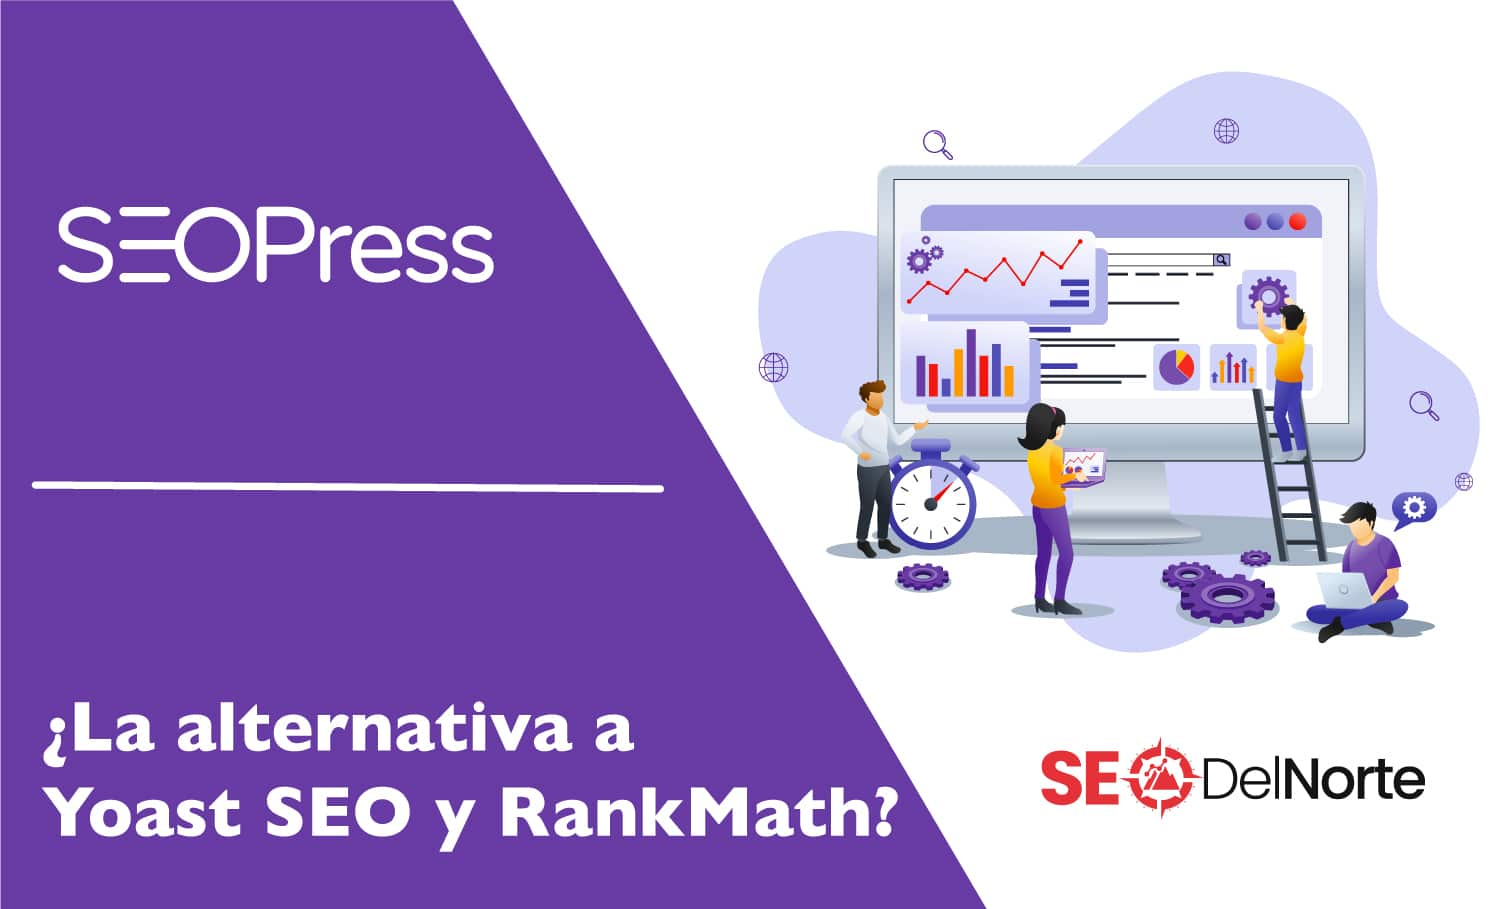 seopress la alternatica a yoast seo